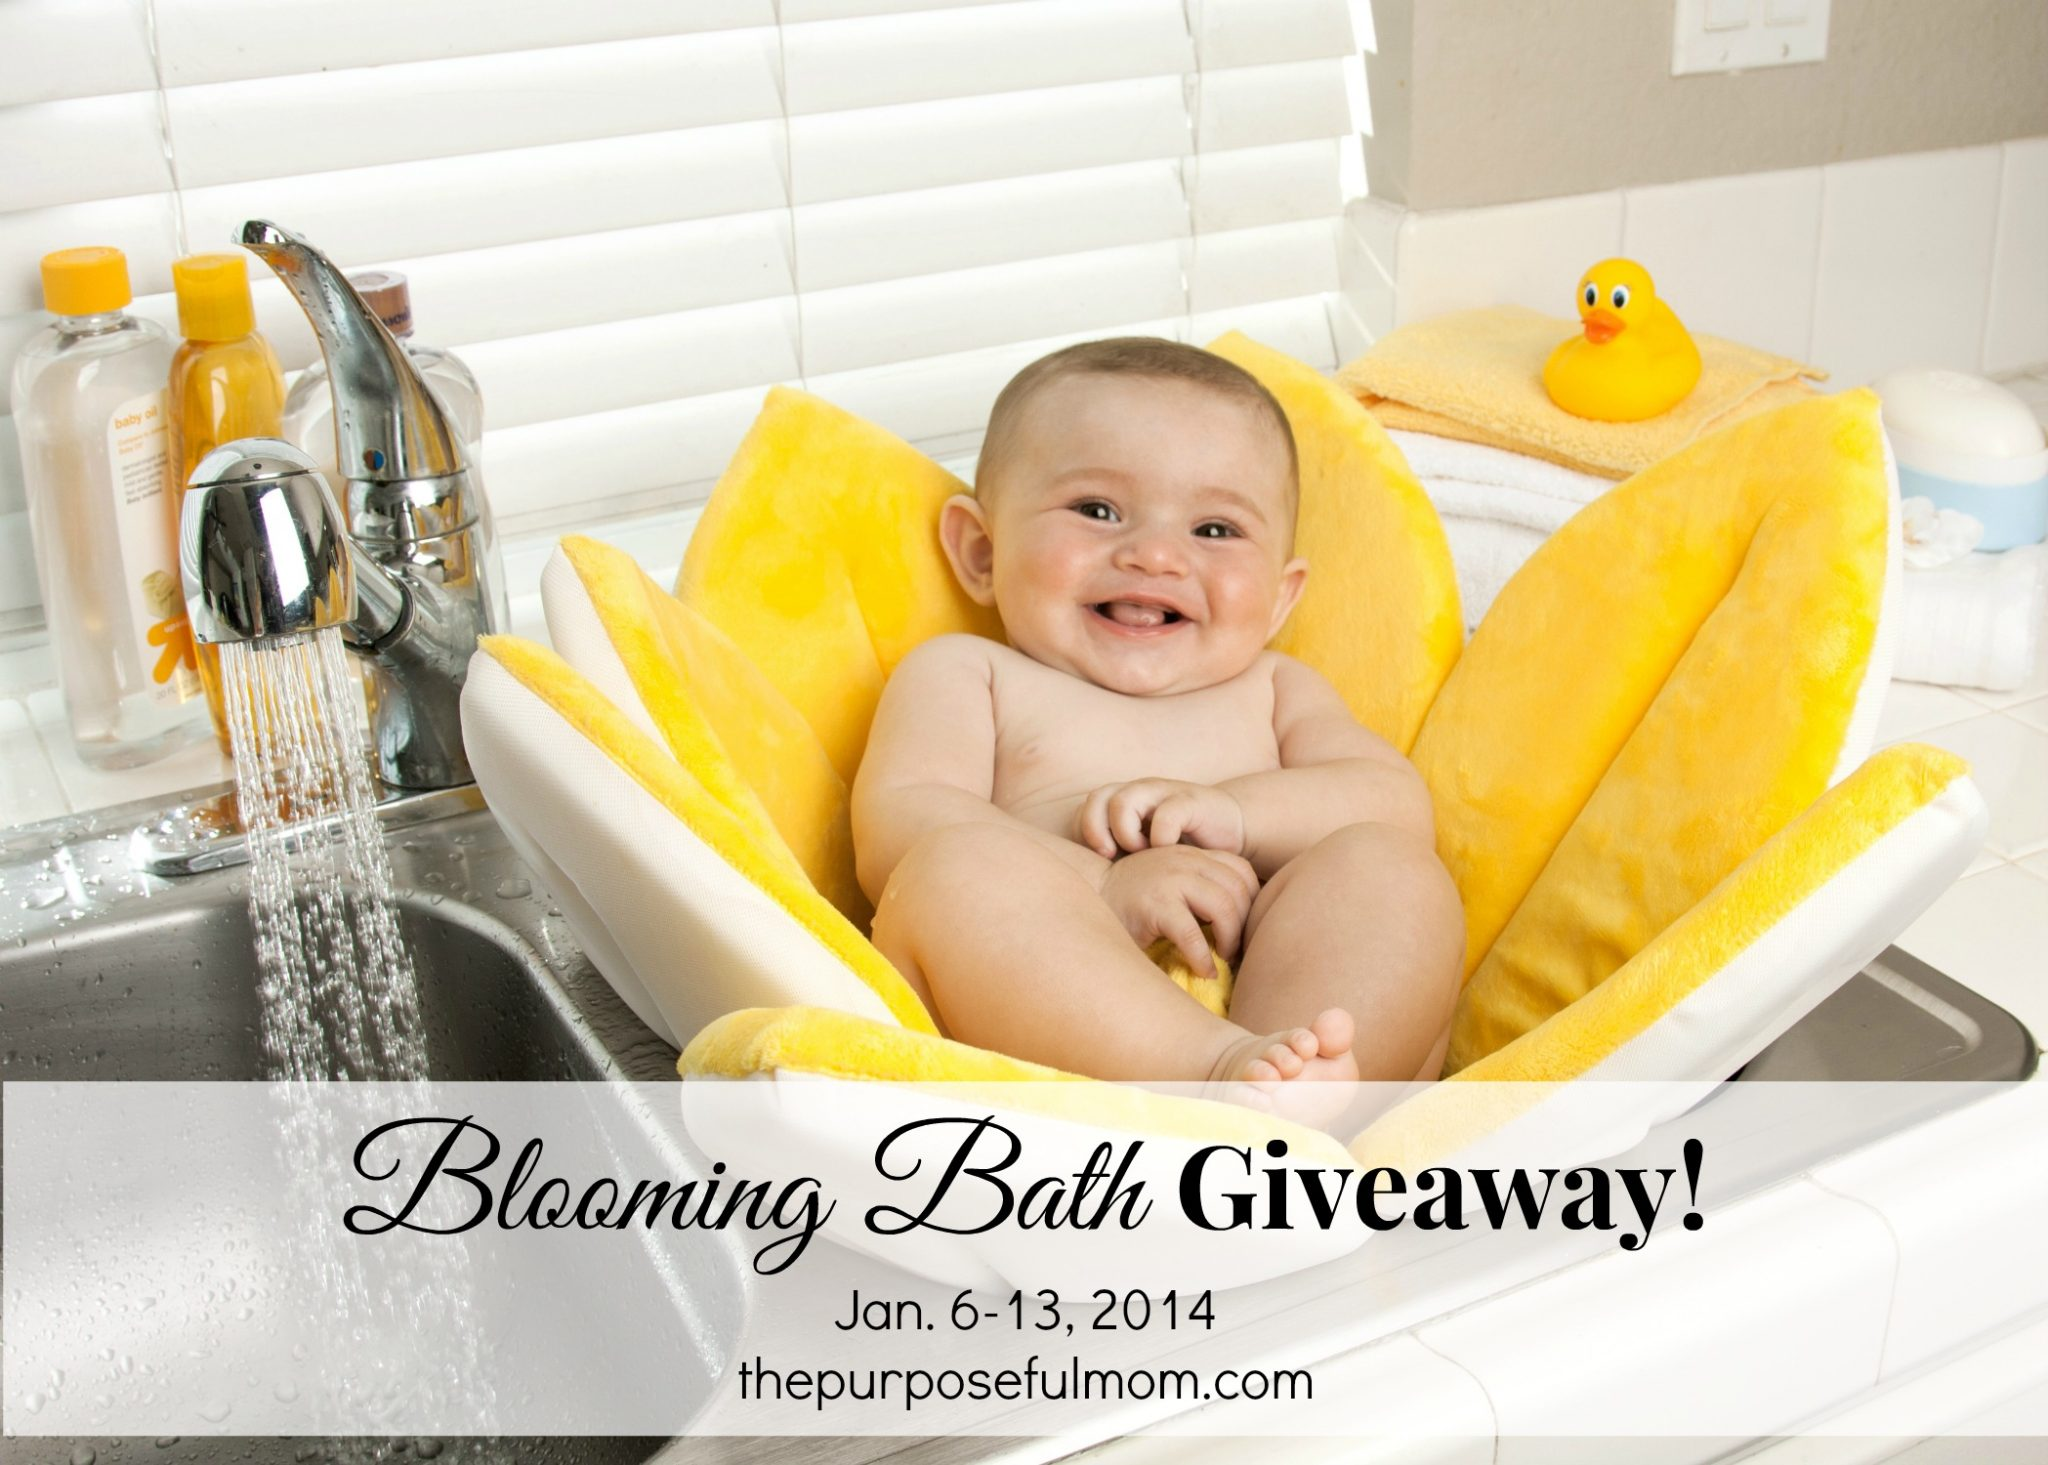 Blooming Bath Giveaway!